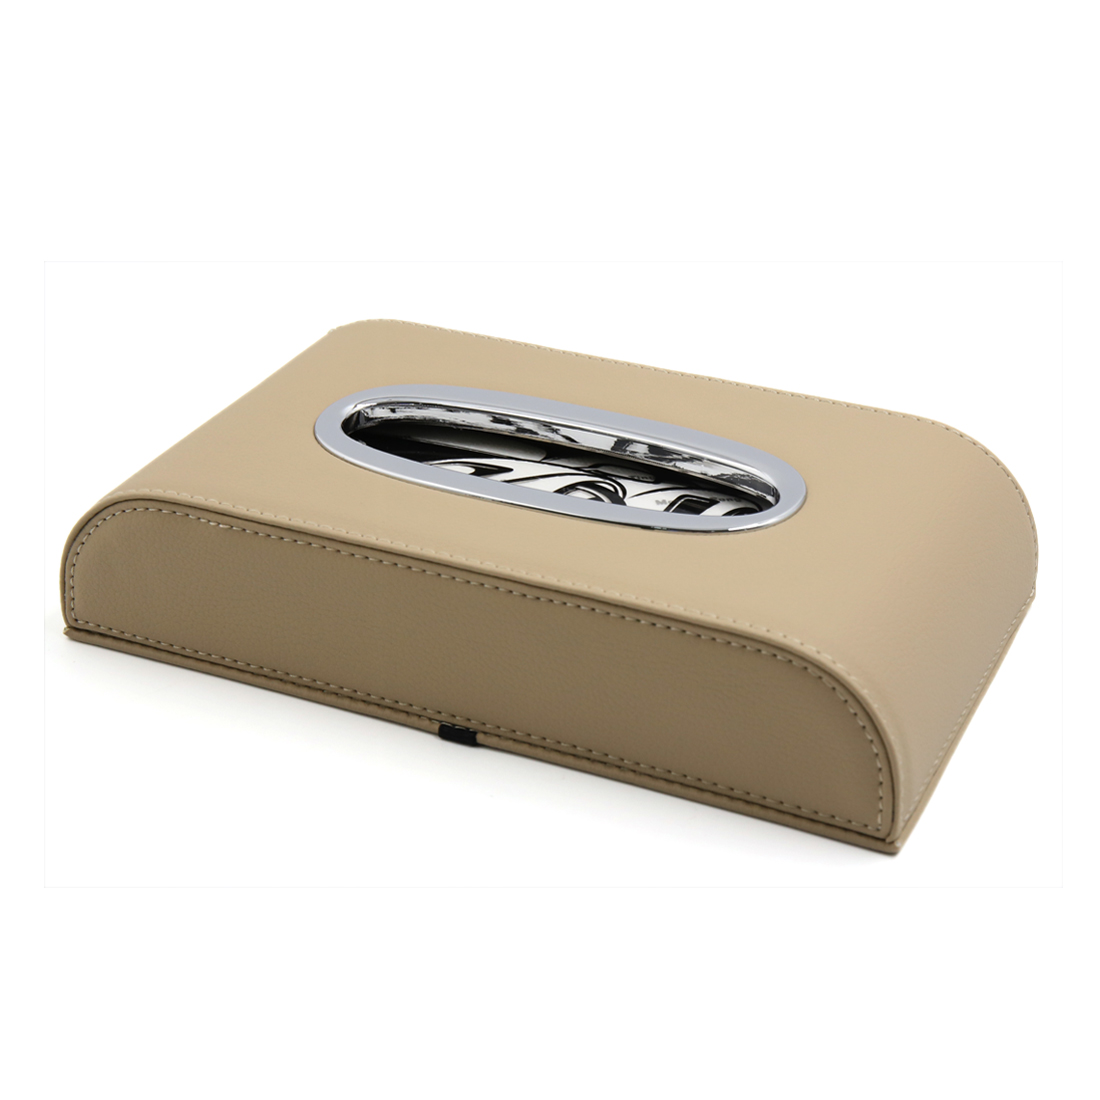 Car Auto Beige Faux Leather Facial Tissue Box Holder Napkin Storage Case Cover - image 3 of 3